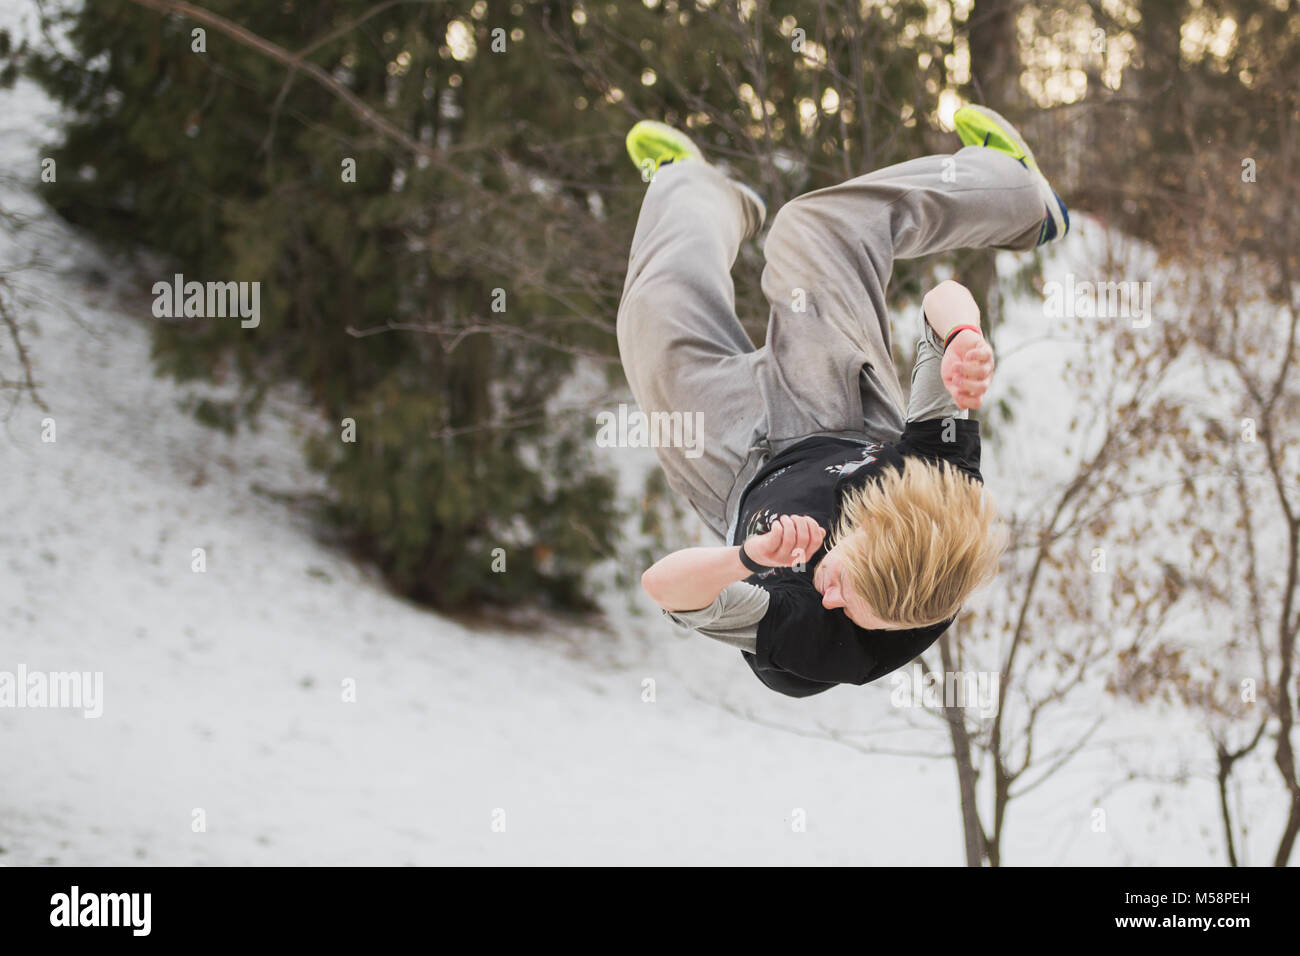 Backflip parkour jumping in winter snow park - free-run training - Stock Image